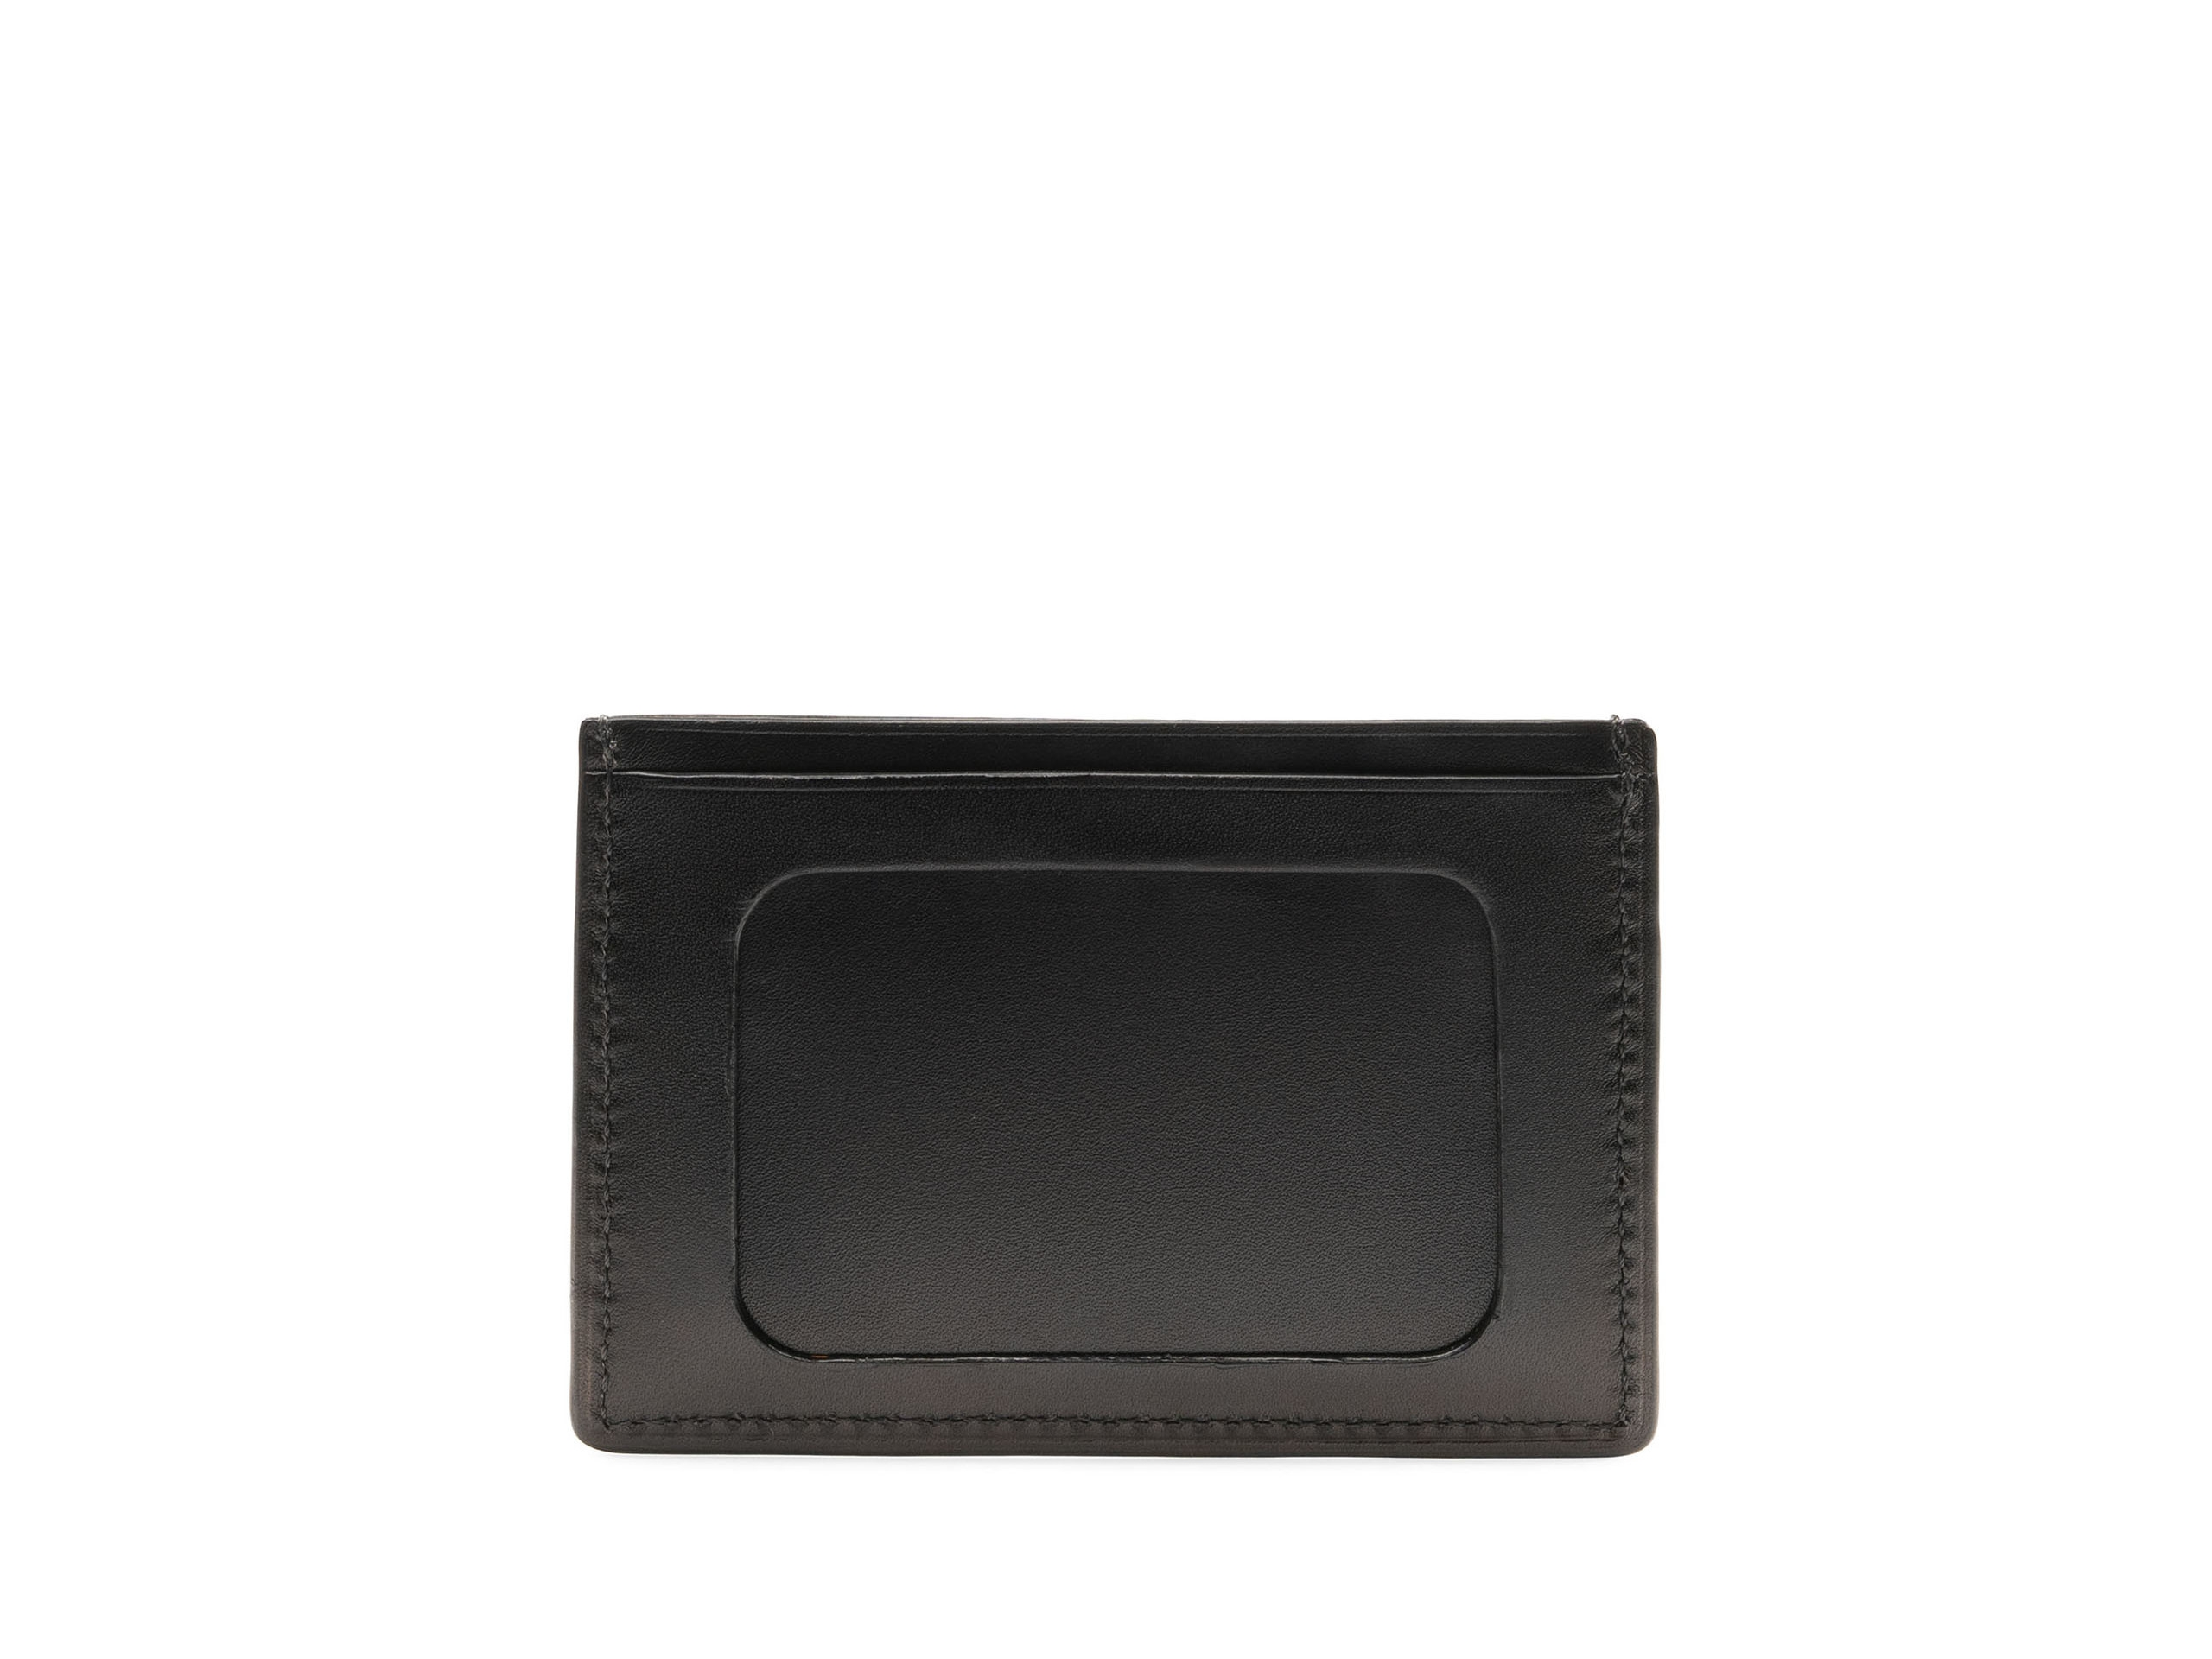 A pair of the Card Holder